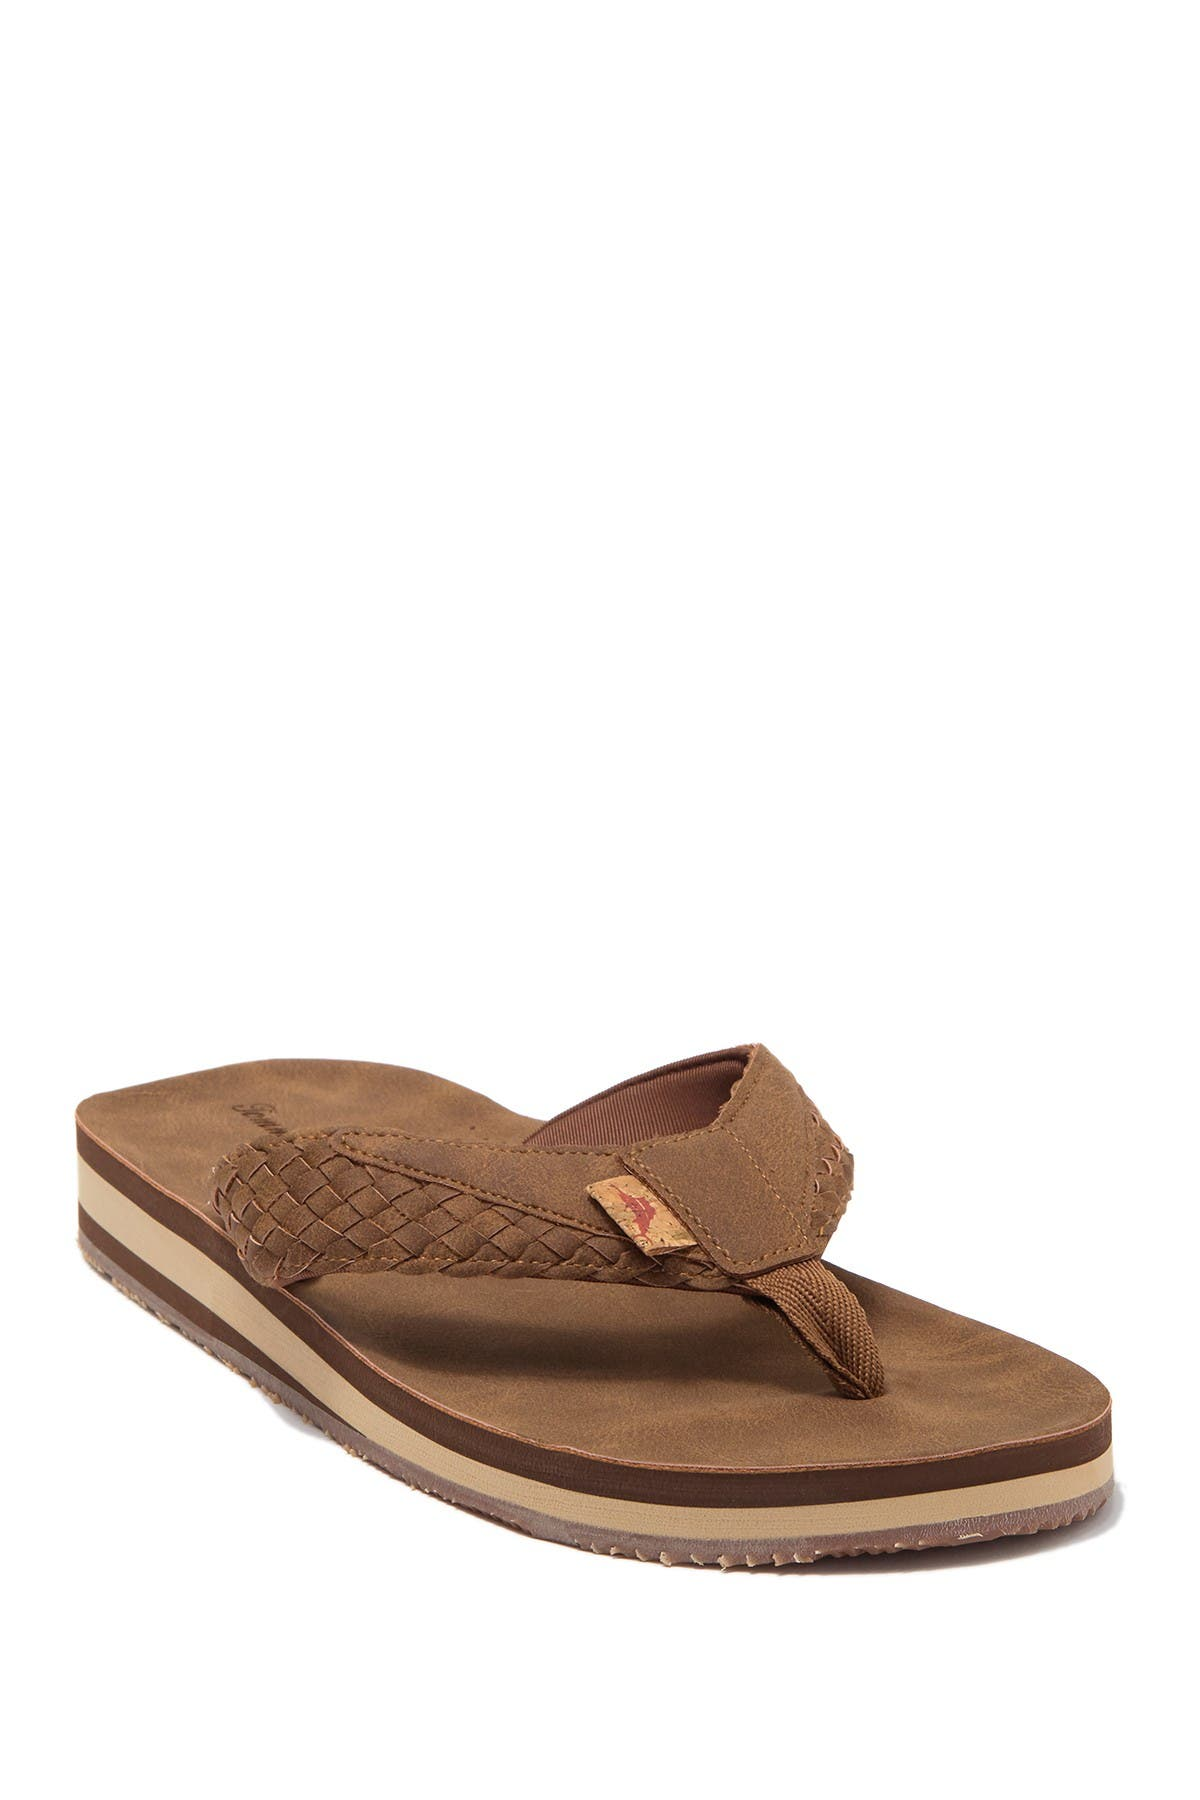 Image of Tommy Bahama Galloway Flip Flop